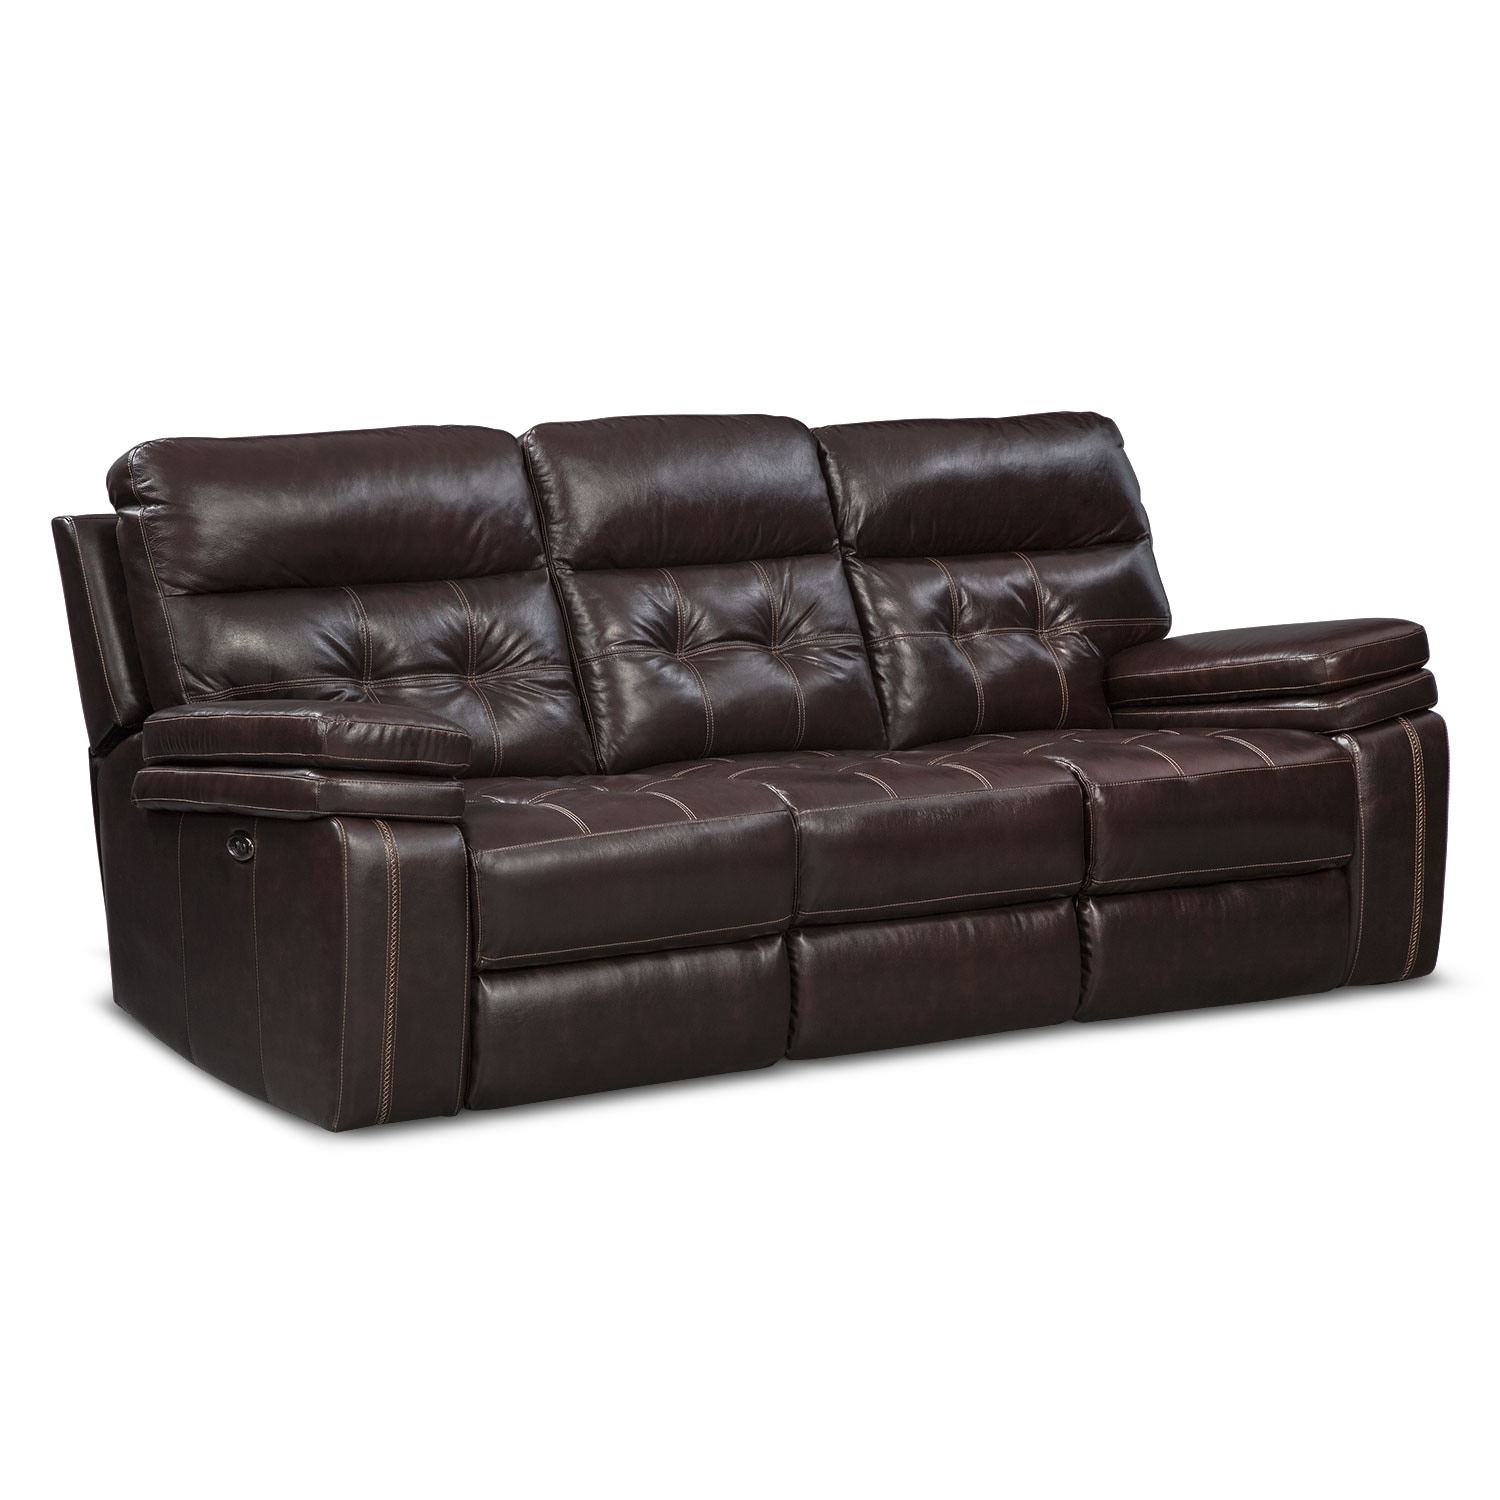 Living Room Furniture - Brisco Brown Power Reclining Sofa